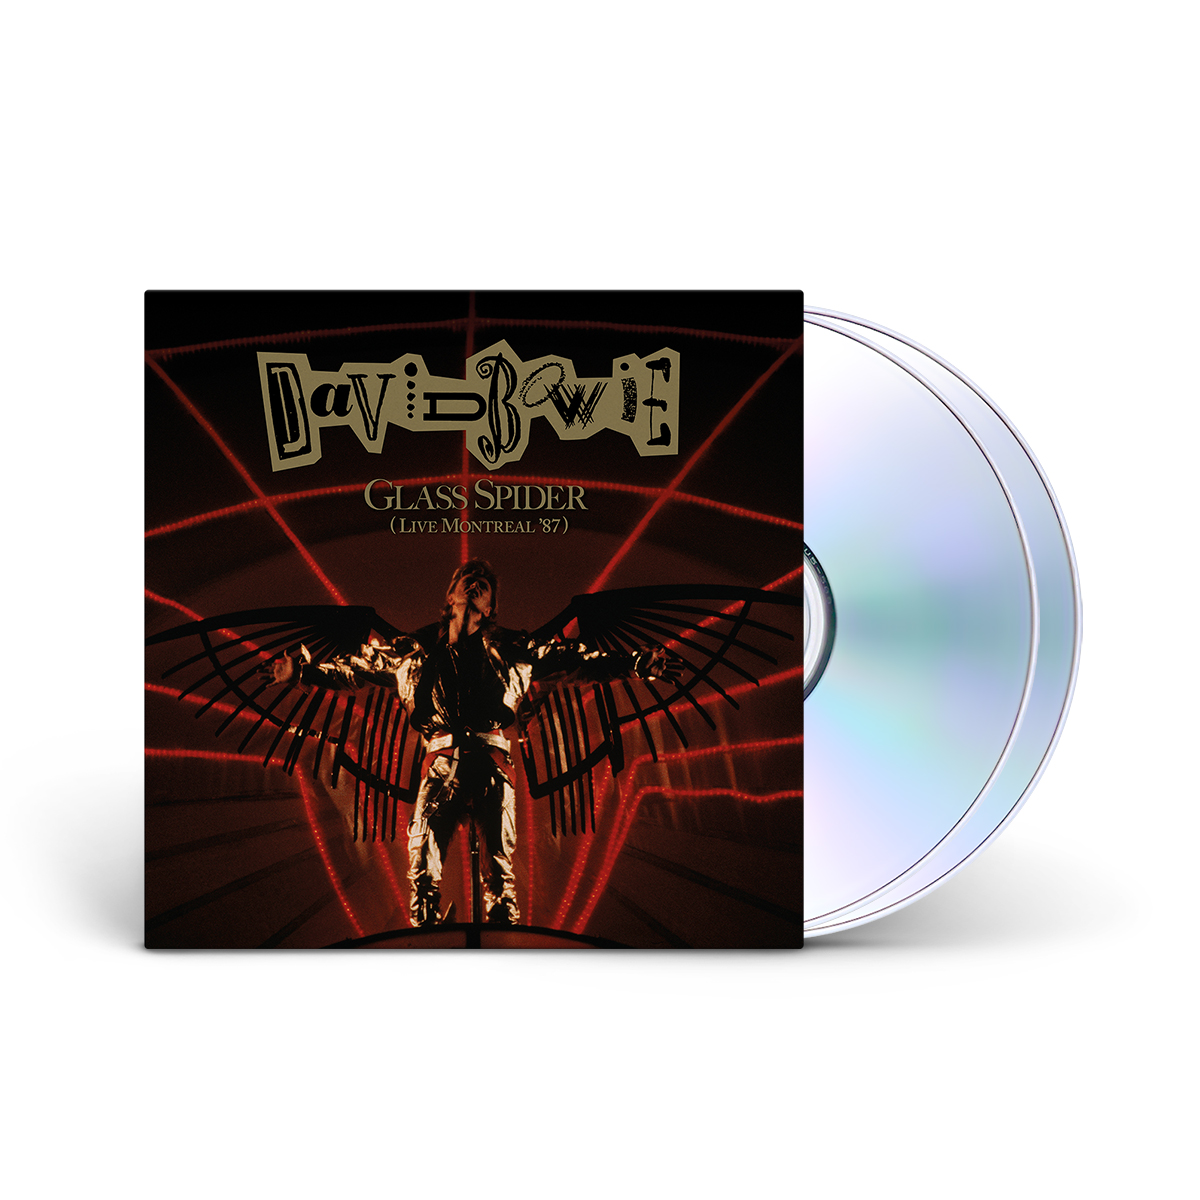 David Bowie - Glass Spider (Live Montreal '87) [2018 Remastered Version] 2 CD